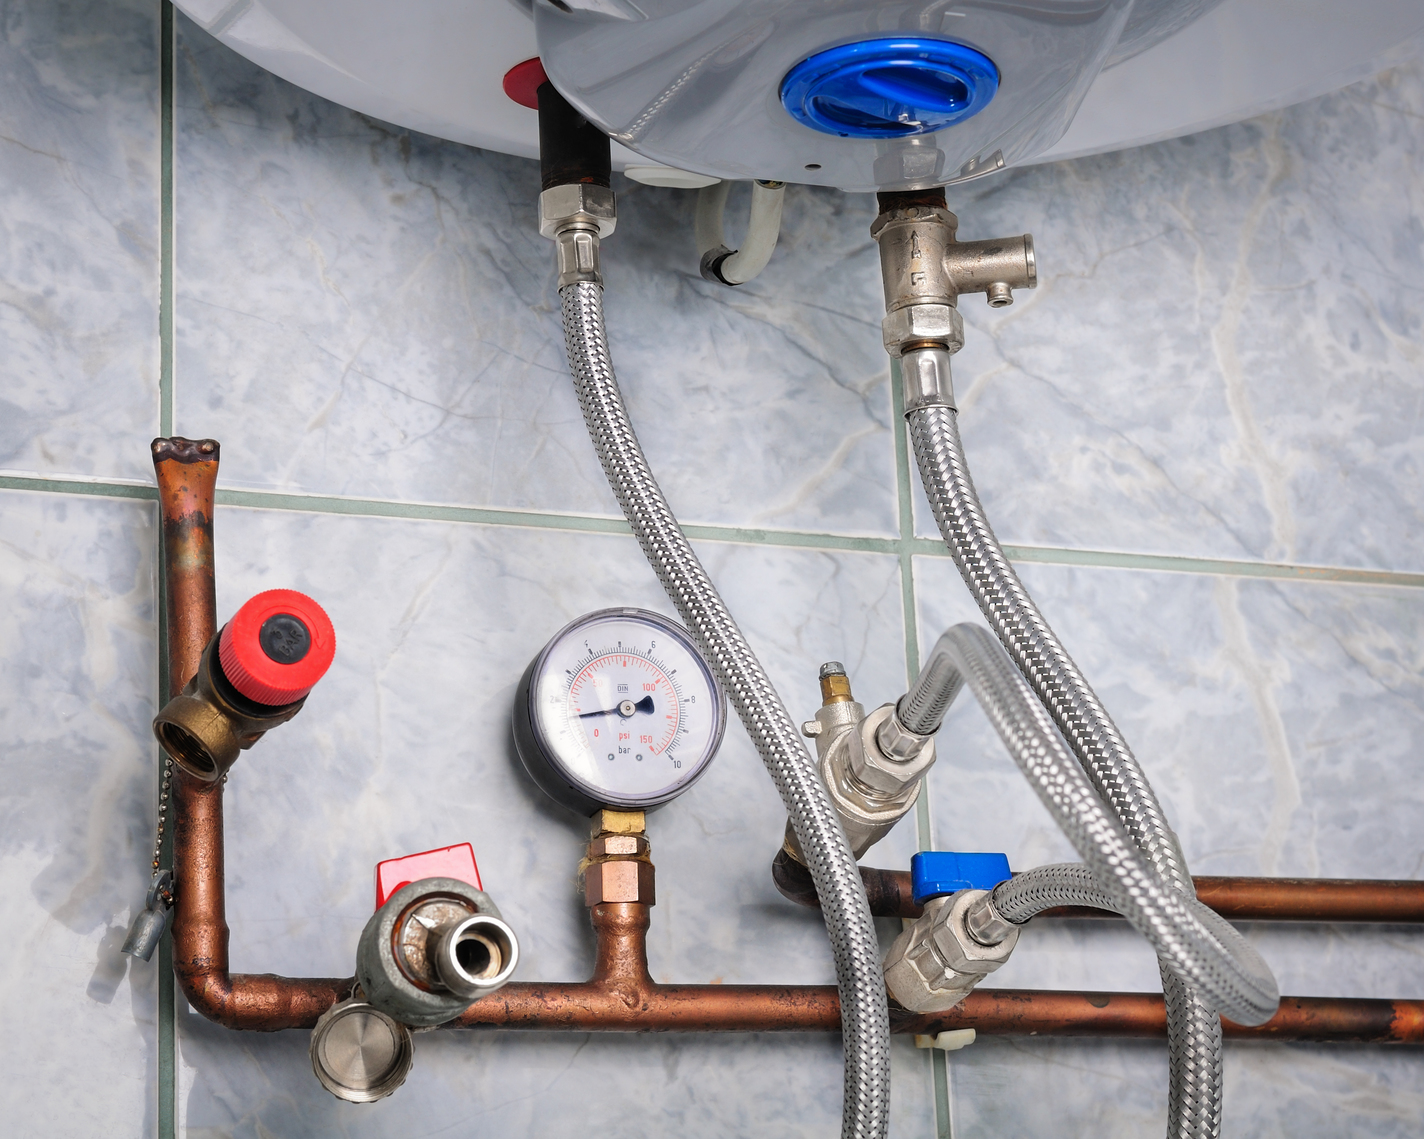 It's Not Just a Leaky Faucet: Problems with Plumbing